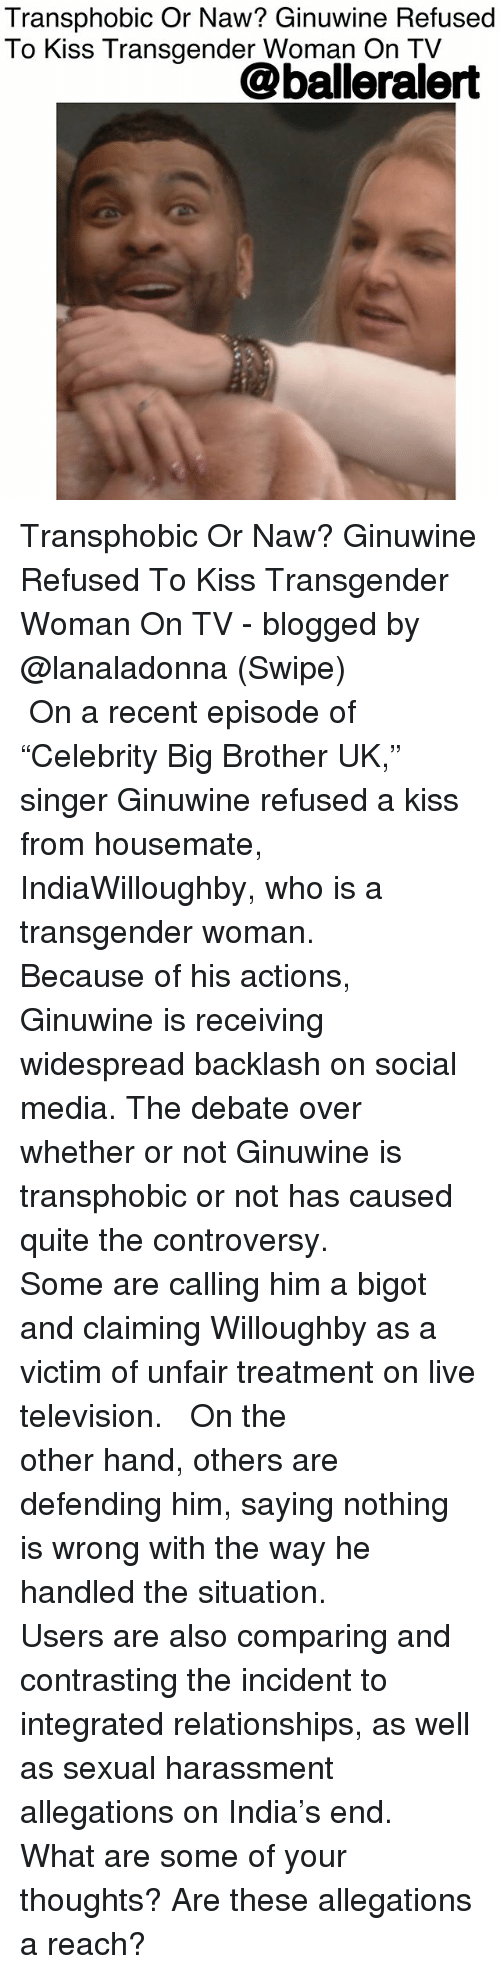 """Or Naw: Transphobic Or Naw? Ginuwine Refused  To Kiss Transgender Woman On TV  @balleralert Transphobic Or Naw? Ginuwine Refused To Kiss Transgender Woman On TV - blogged by @lanaladonna (Swipe) ⠀⠀⠀⠀⠀⠀⠀ ⠀⠀⠀⠀⠀⠀⠀ On a recent episode of """"Celebrity Big Brother UK,"""" singer Ginuwine refused a kiss from housemate, IndiaWilloughby, who is a transgender woman. ⠀⠀⠀⠀⠀⠀⠀ ⠀⠀⠀⠀⠀⠀⠀ Because of his actions, Ginuwine is receiving widespread backlash on social media. The debate over whether or not Ginuwine is transphobic or not has caused quite the controversy. ⠀⠀⠀⠀⠀⠀⠀ ⠀⠀⠀⠀⠀⠀⠀ Some are calling him a bigot and claiming Willoughby as a victim of unfair treatment on live television. ⠀⠀⠀⠀⠀⠀⠀ ⠀⠀⠀⠀⠀⠀⠀ On the other hand, others are defending him, saying nothing is wrong with the way he handled the situation. ⠀⠀⠀⠀⠀⠀⠀ ⠀⠀⠀⠀⠀⠀⠀ Users are also comparing and contrasting the incident to integrated relationships, as well as sexual harassment allegations on India's end. ⠀⠀⠀⠀⠀⠀⠀ What are some of your thoughts? Are these allegations a reach?"""